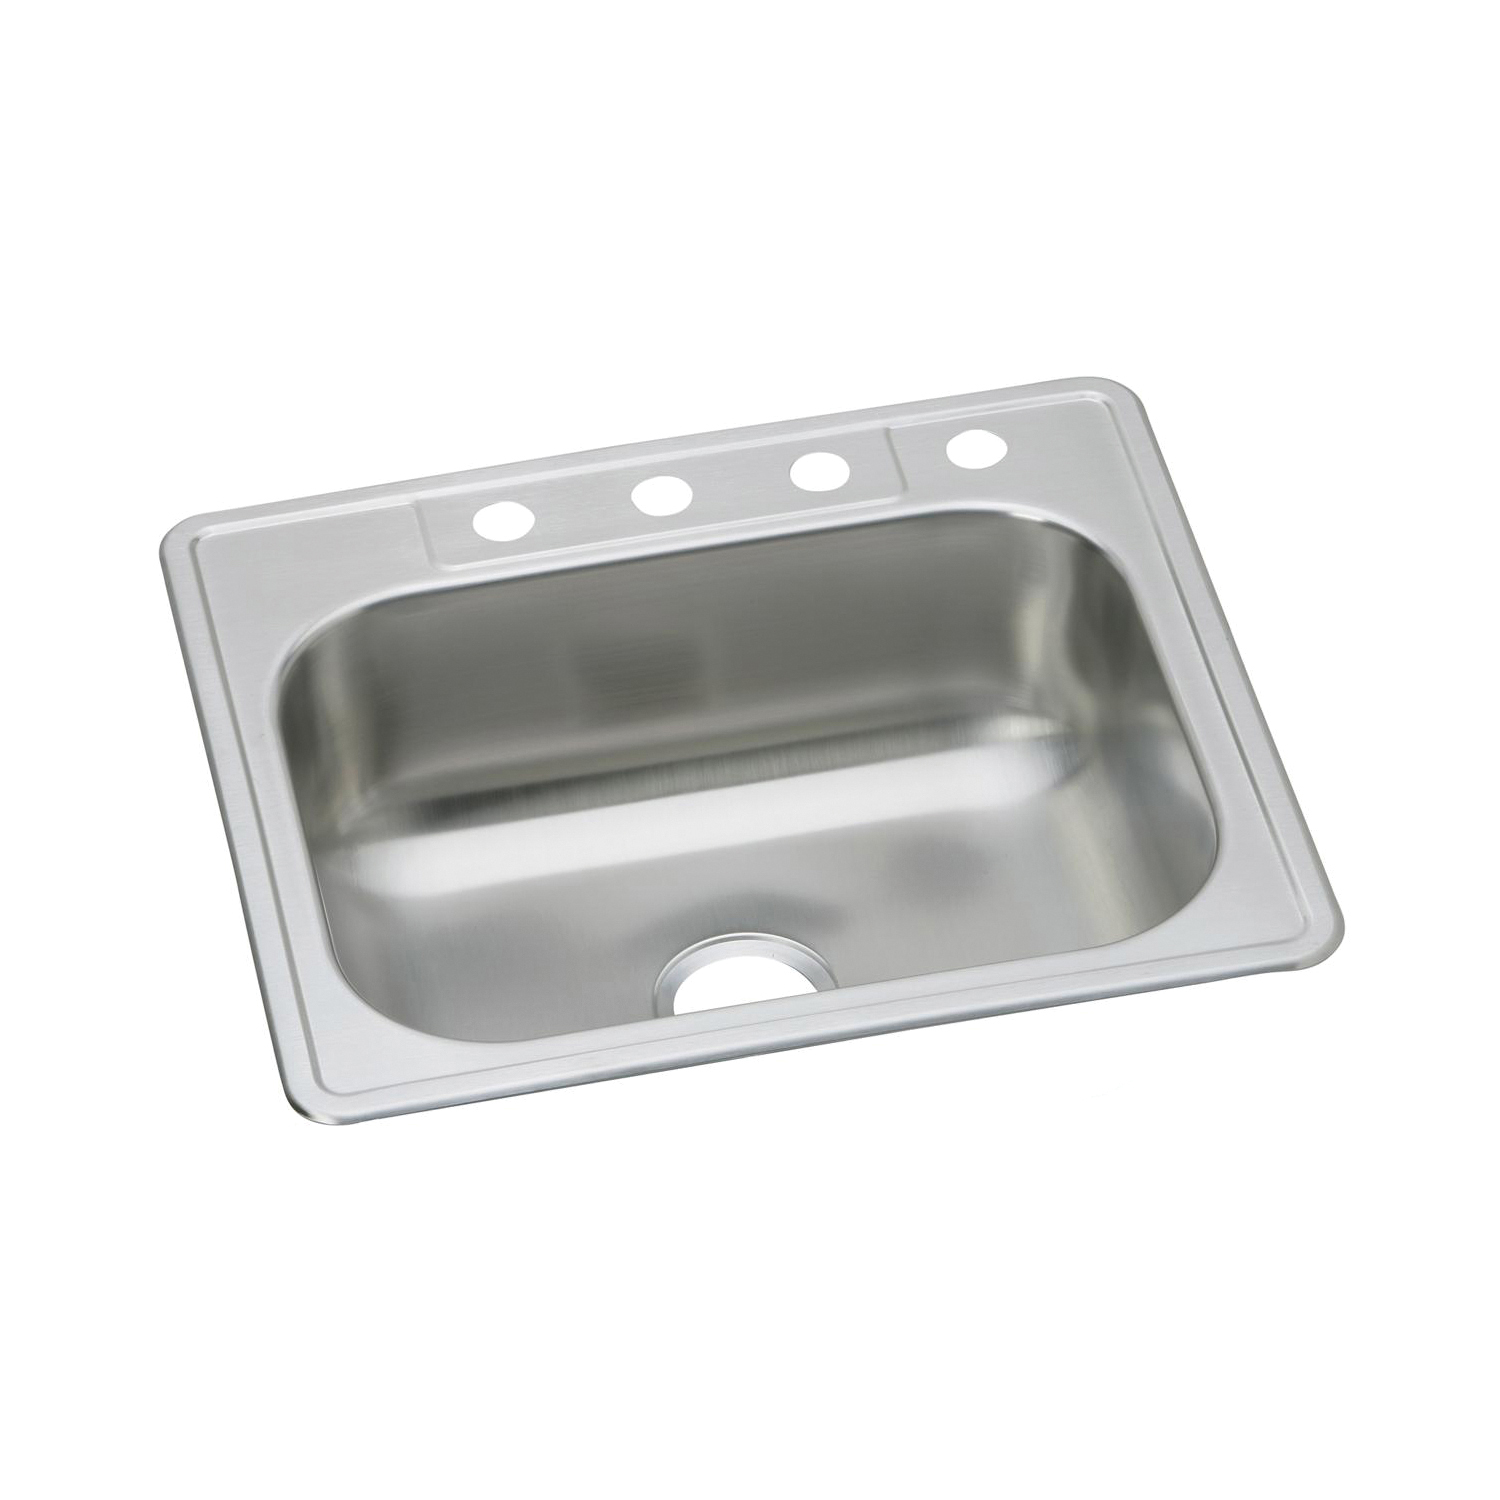 Elkay® DSE125224 Dayton® Kitchen Sink, Rectangular, 4 Faucet Holes, 25 in W x 22 in D x 8-1/16 in H, Top Mount, Stainless Steel, Elite Satin, Domestic